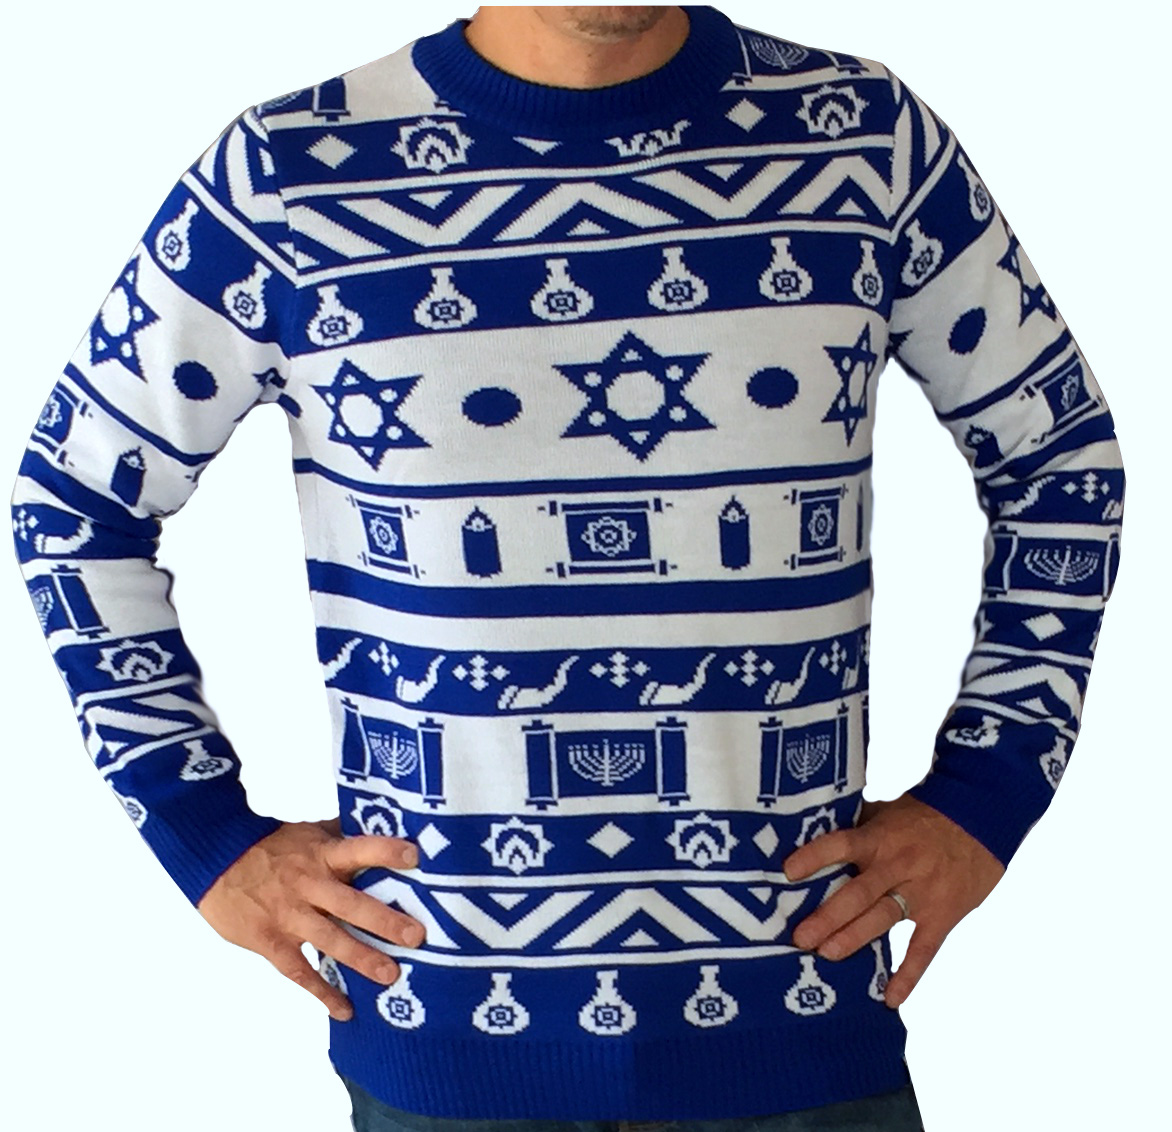 The Hanukkah Ugly Sweater